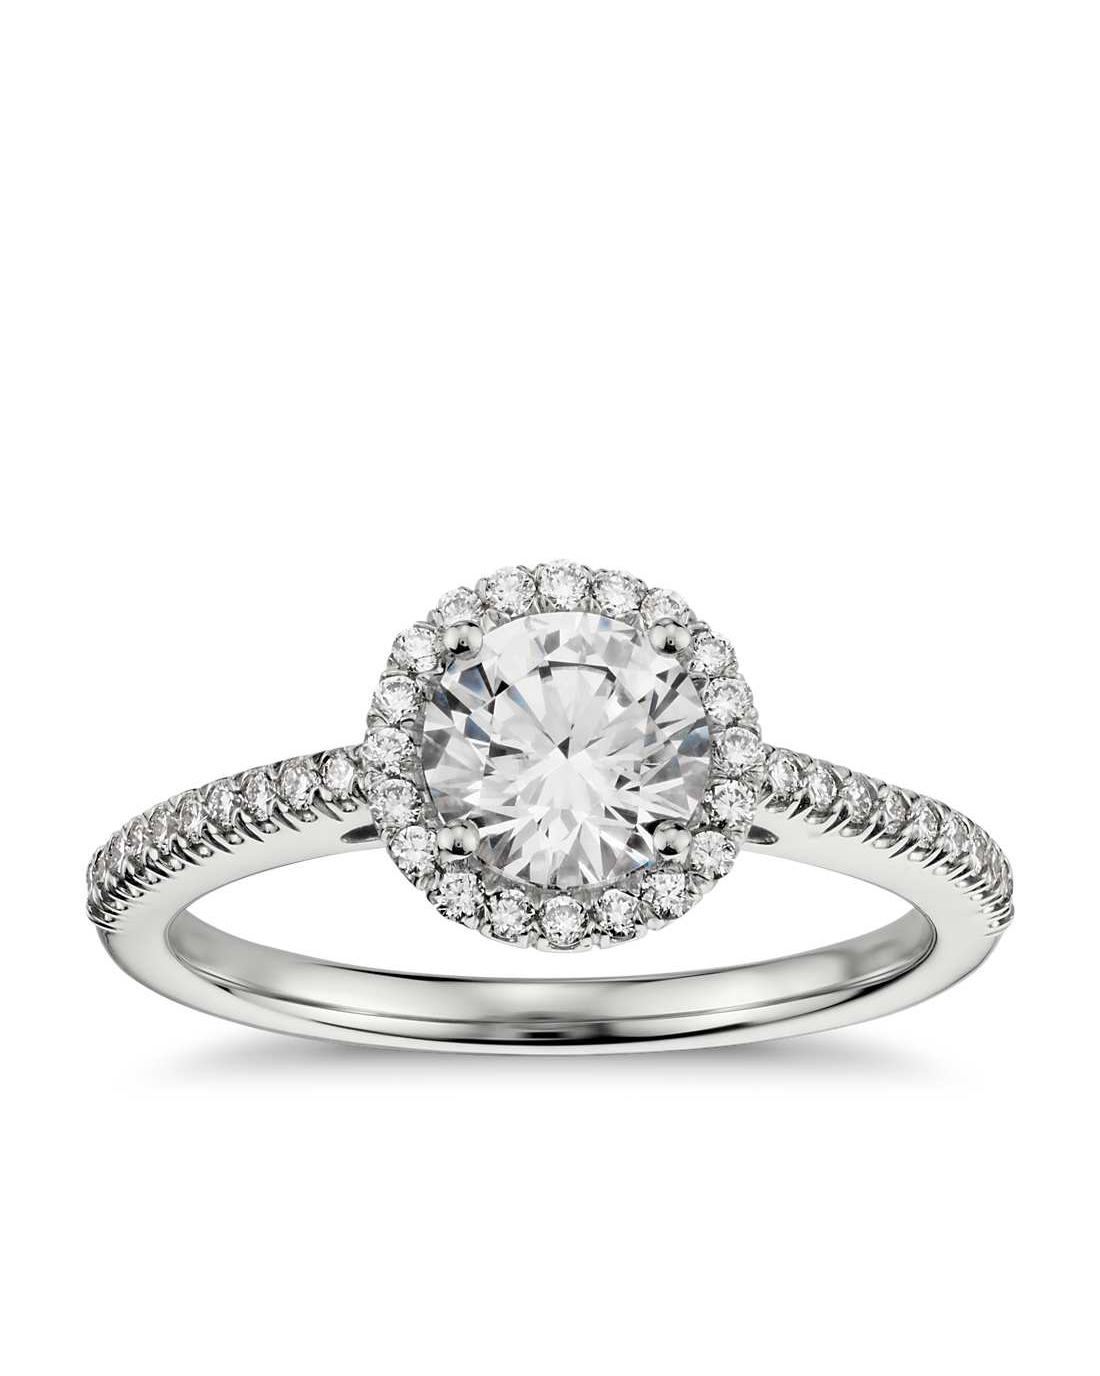 Blue Nile Classic Halo Diamond Engagement Ring